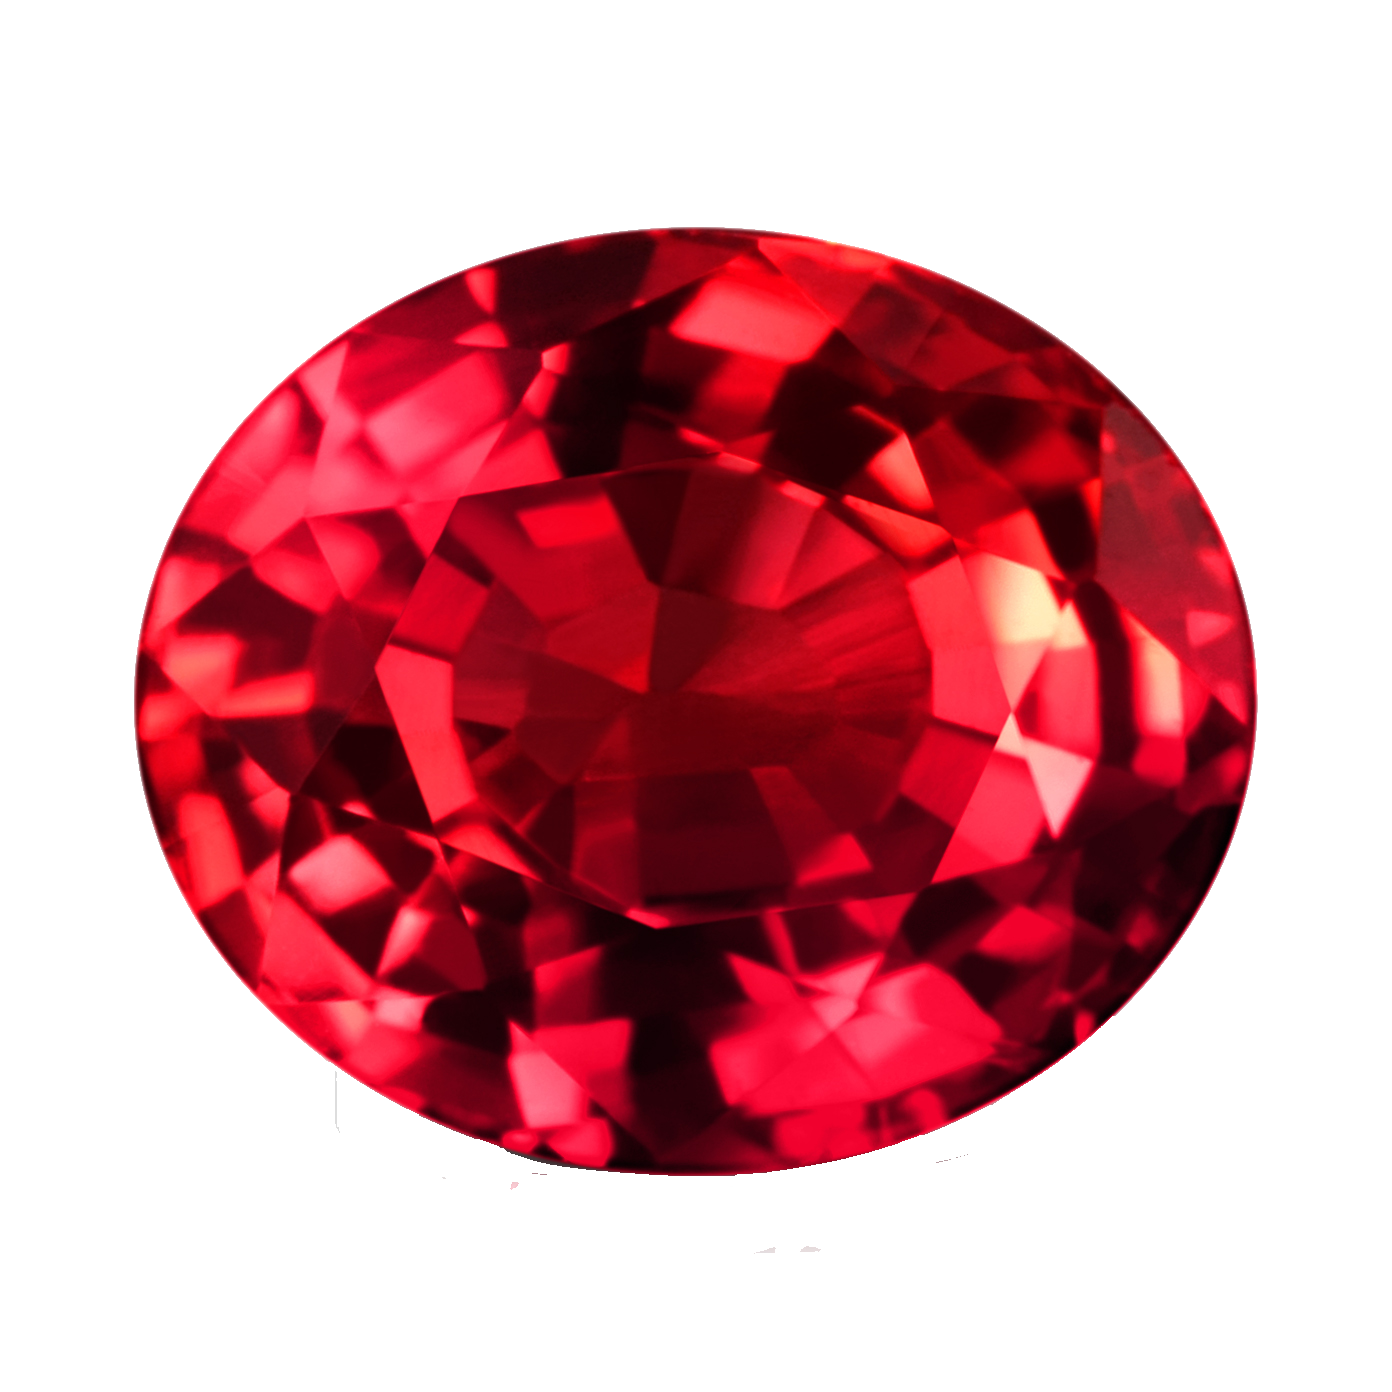 Ruby stone png images. Gem clipart transparent background